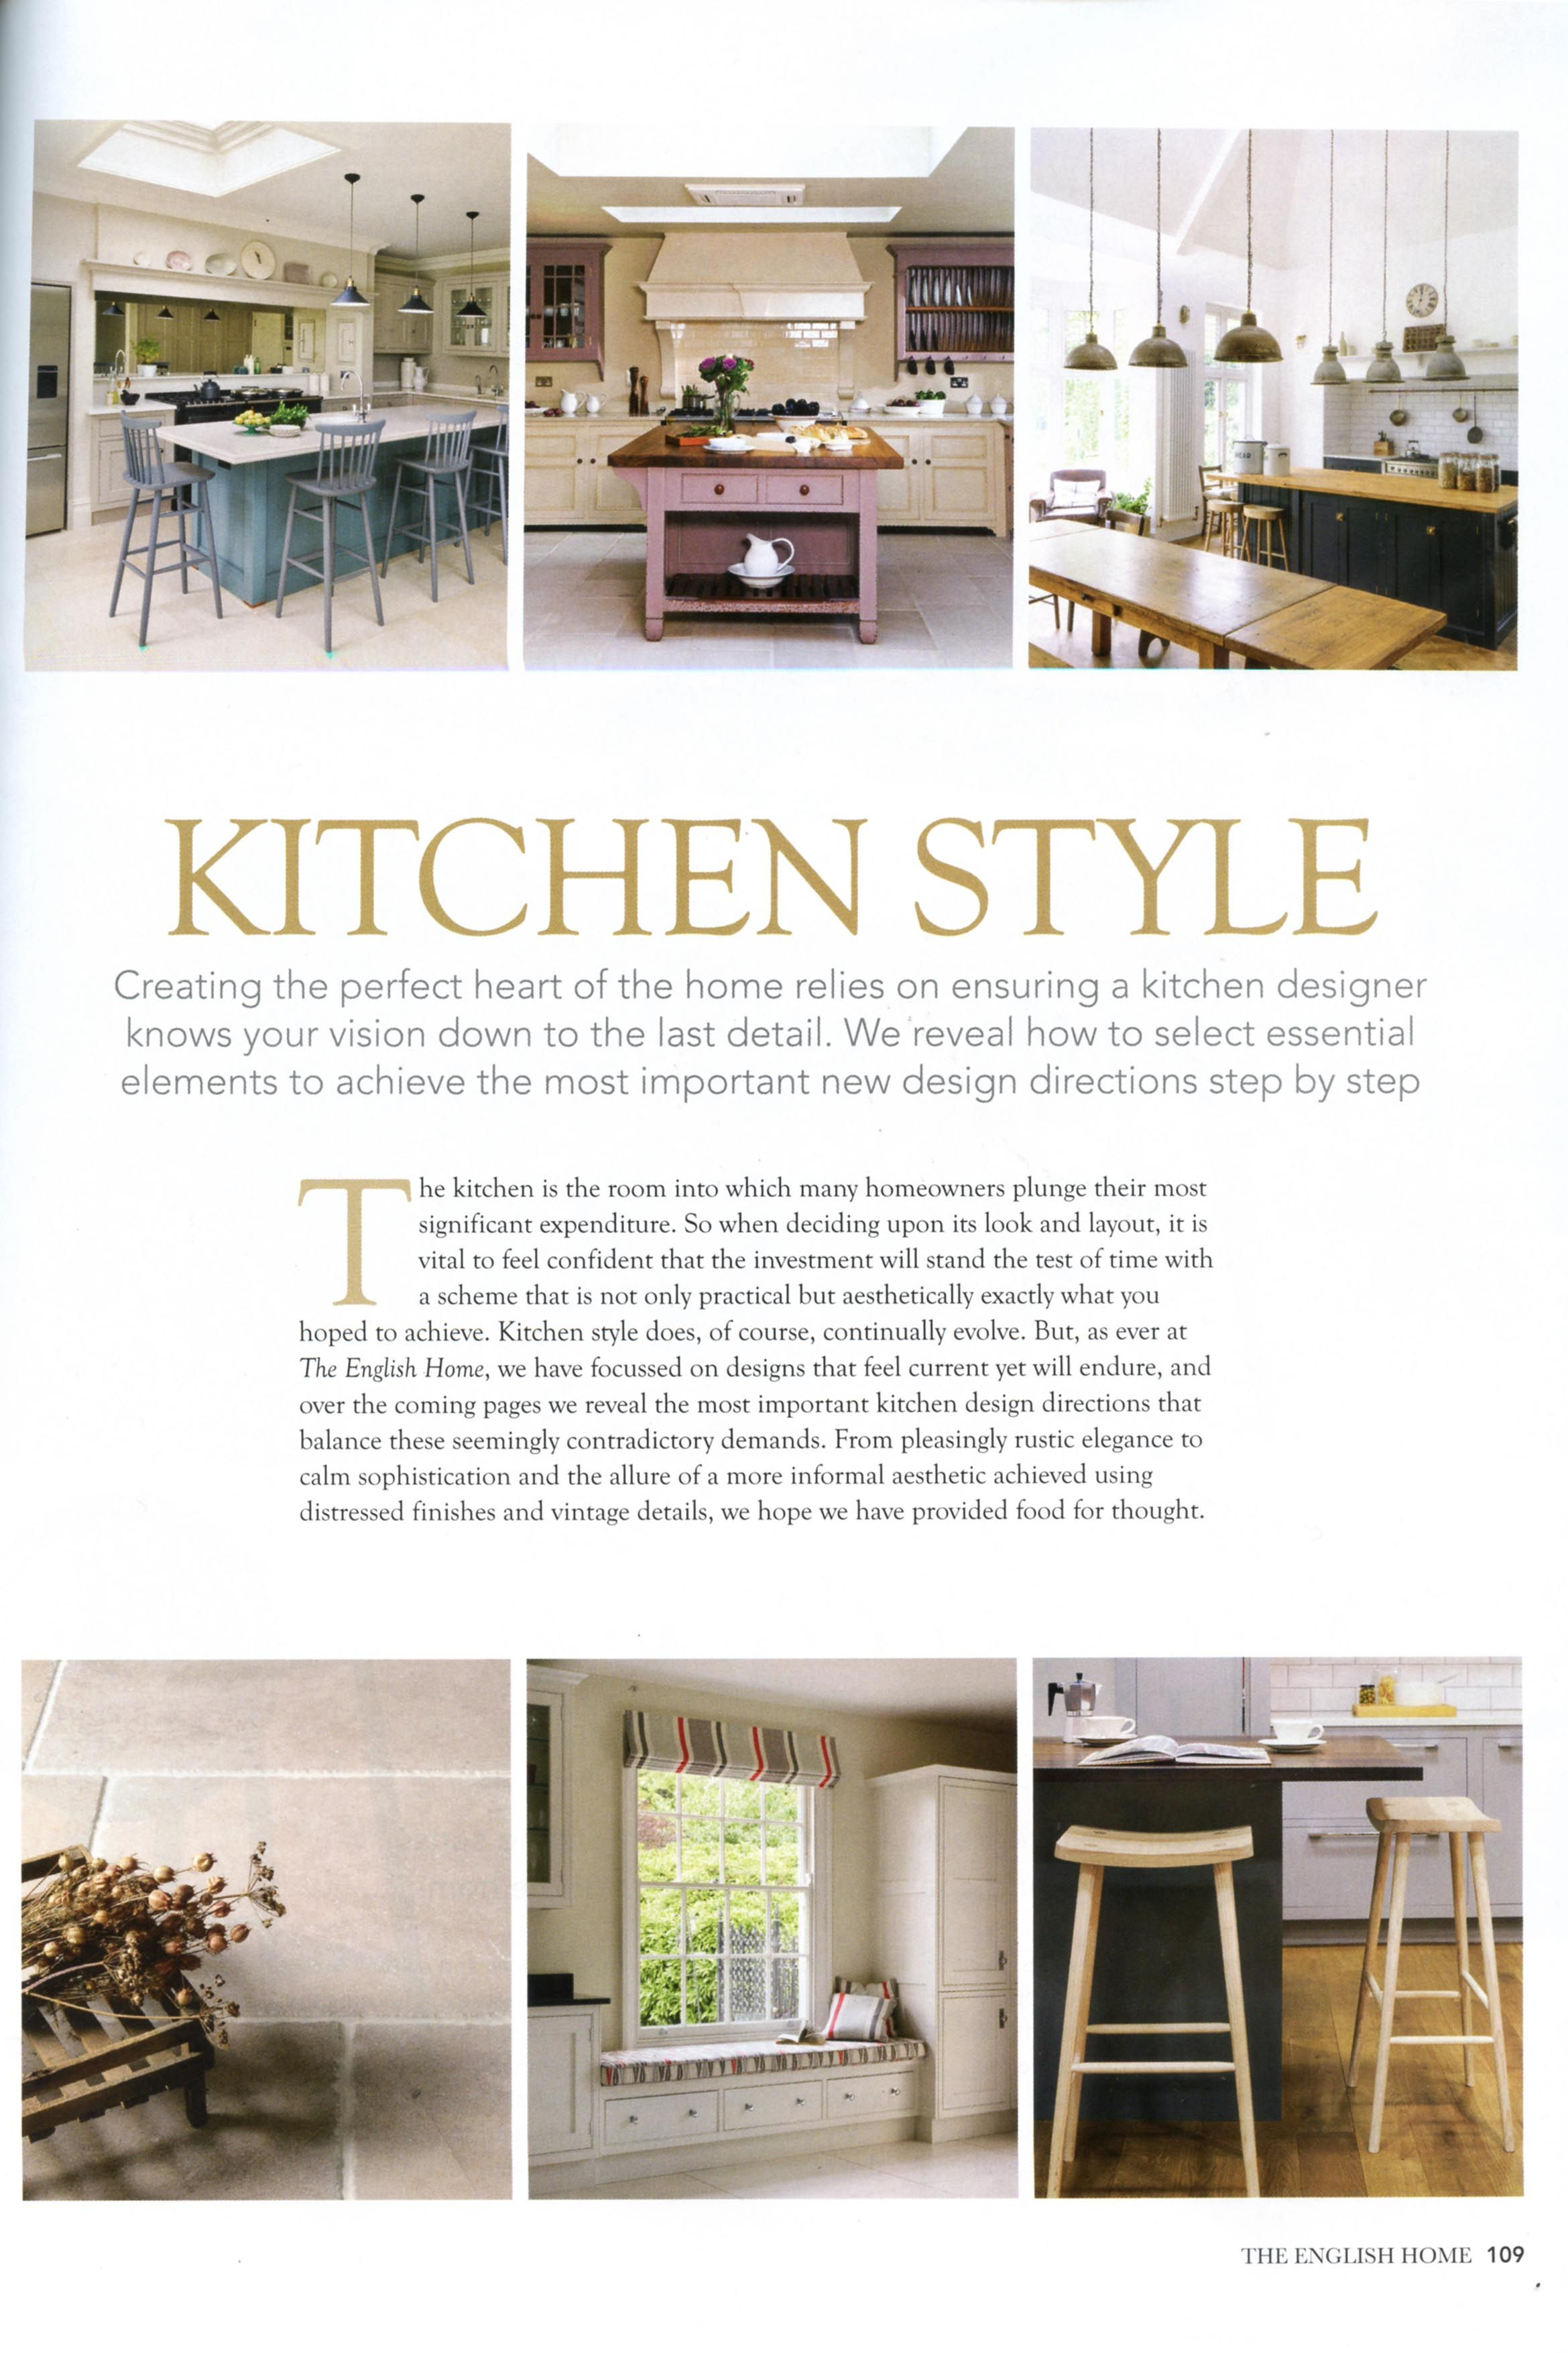 Have a look at this beautiful bespoke kitchen from Martin Moore ...